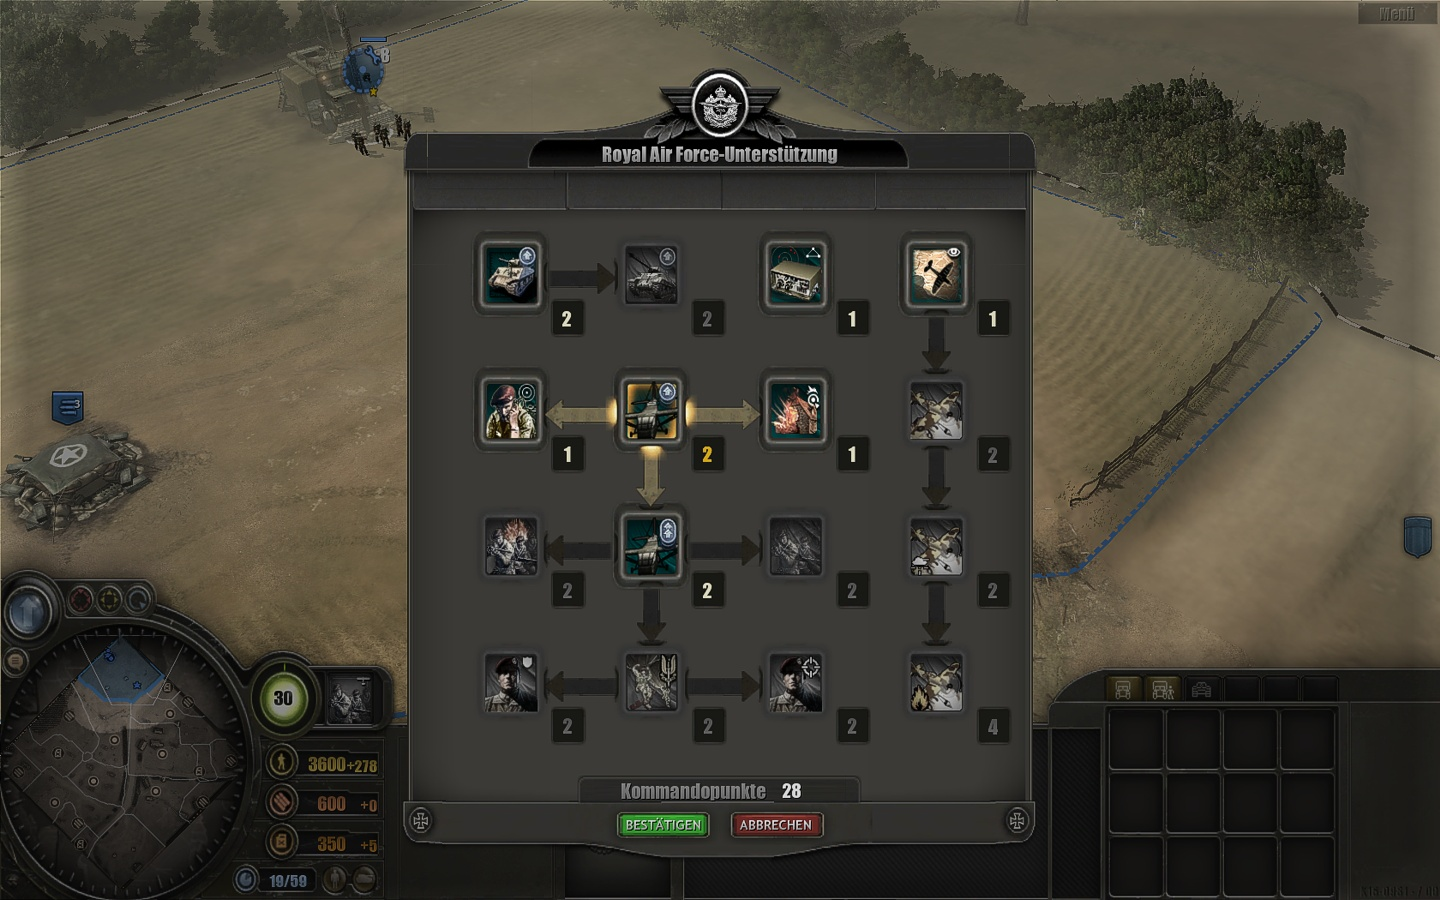 Doctrine's Reworked image - Blitzkrieg Mod for Company of Heroes